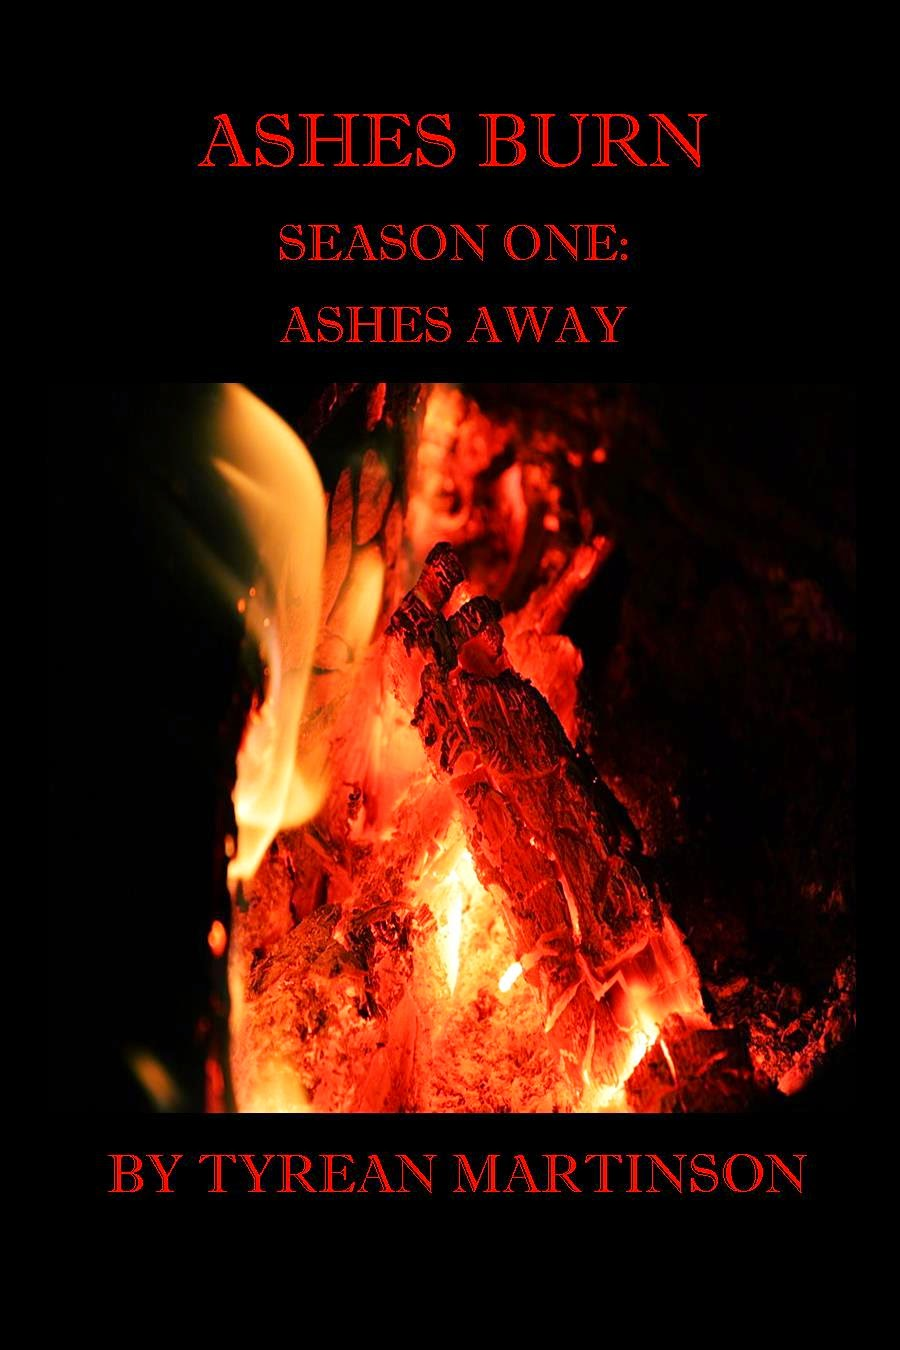 ASHES BURN SEASON 1: ASHES AWAY